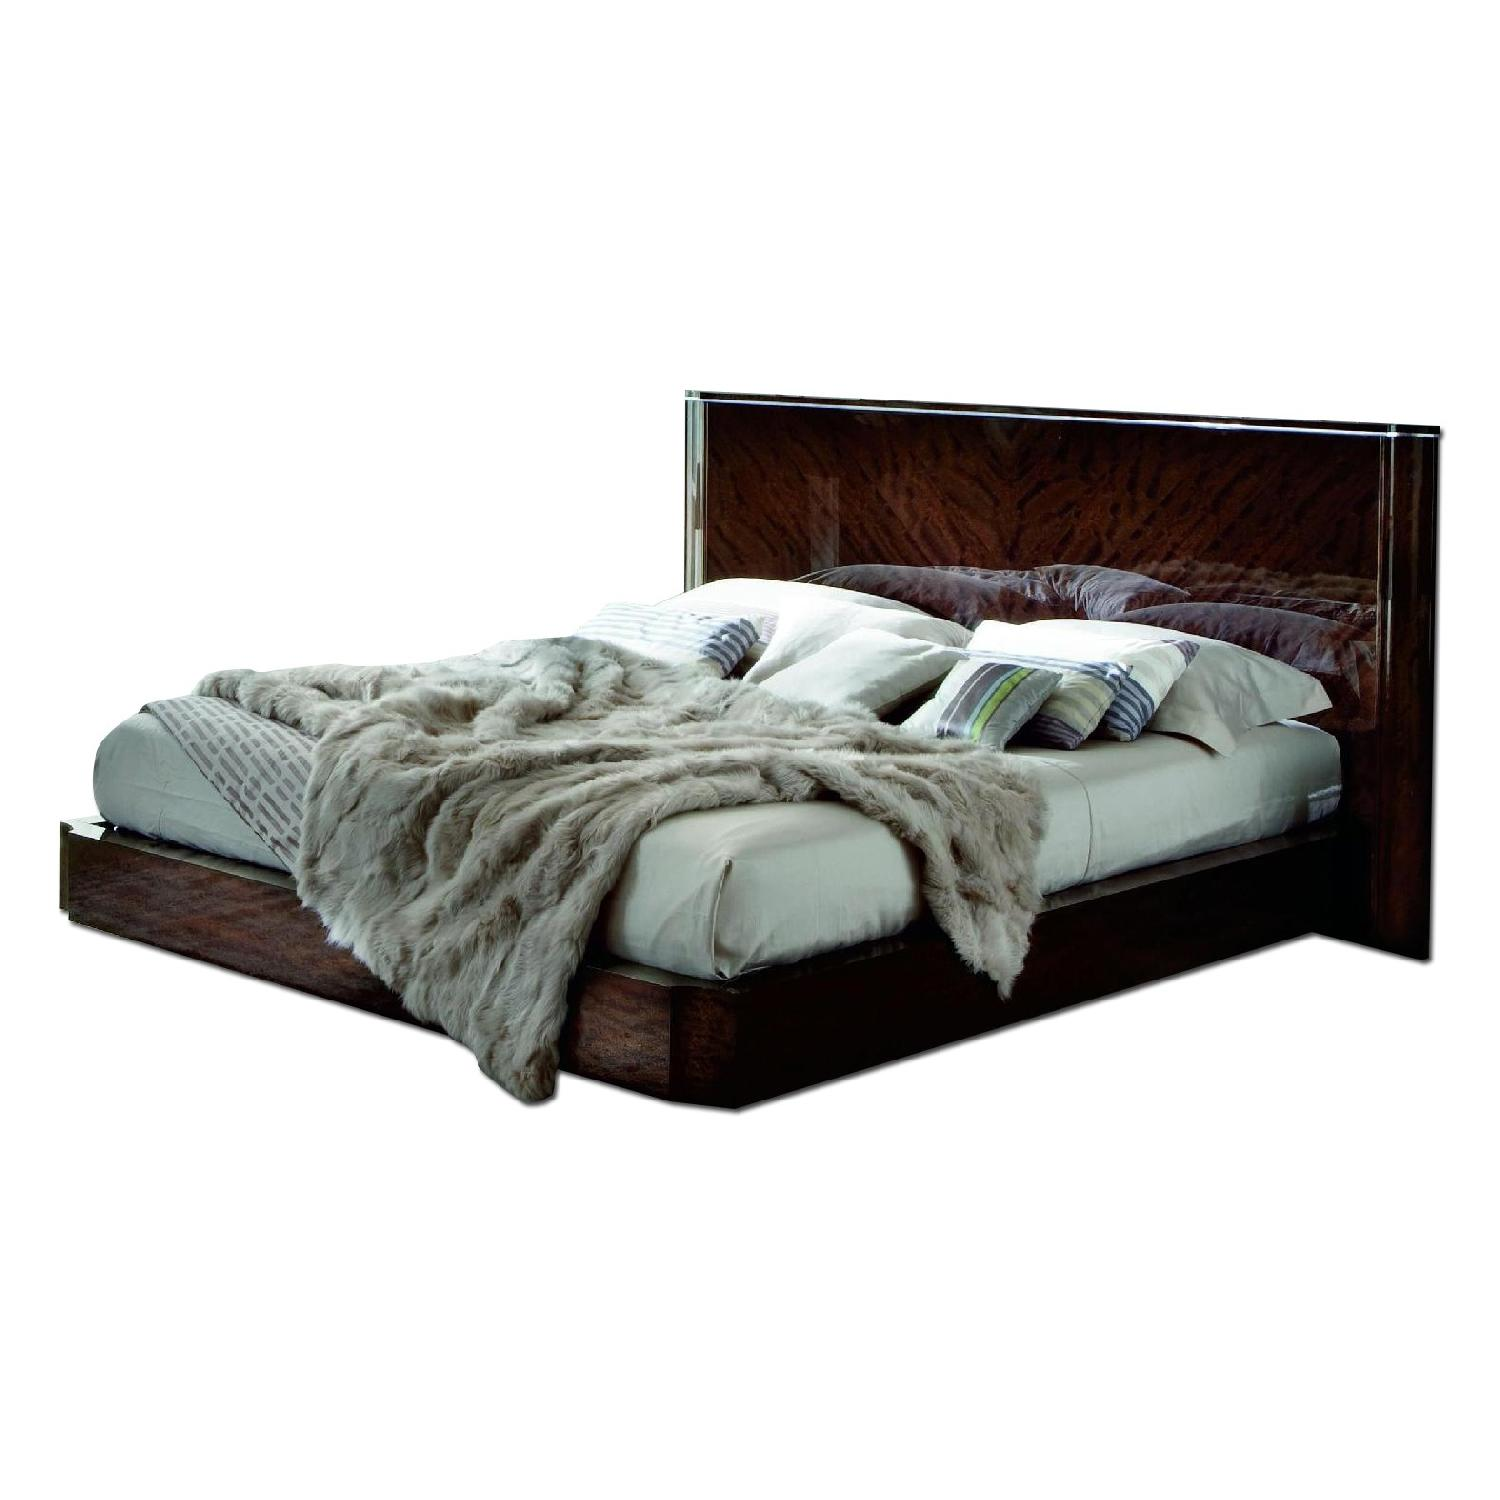 Alf Uno Spa King Size Platform Bed - AptDeco